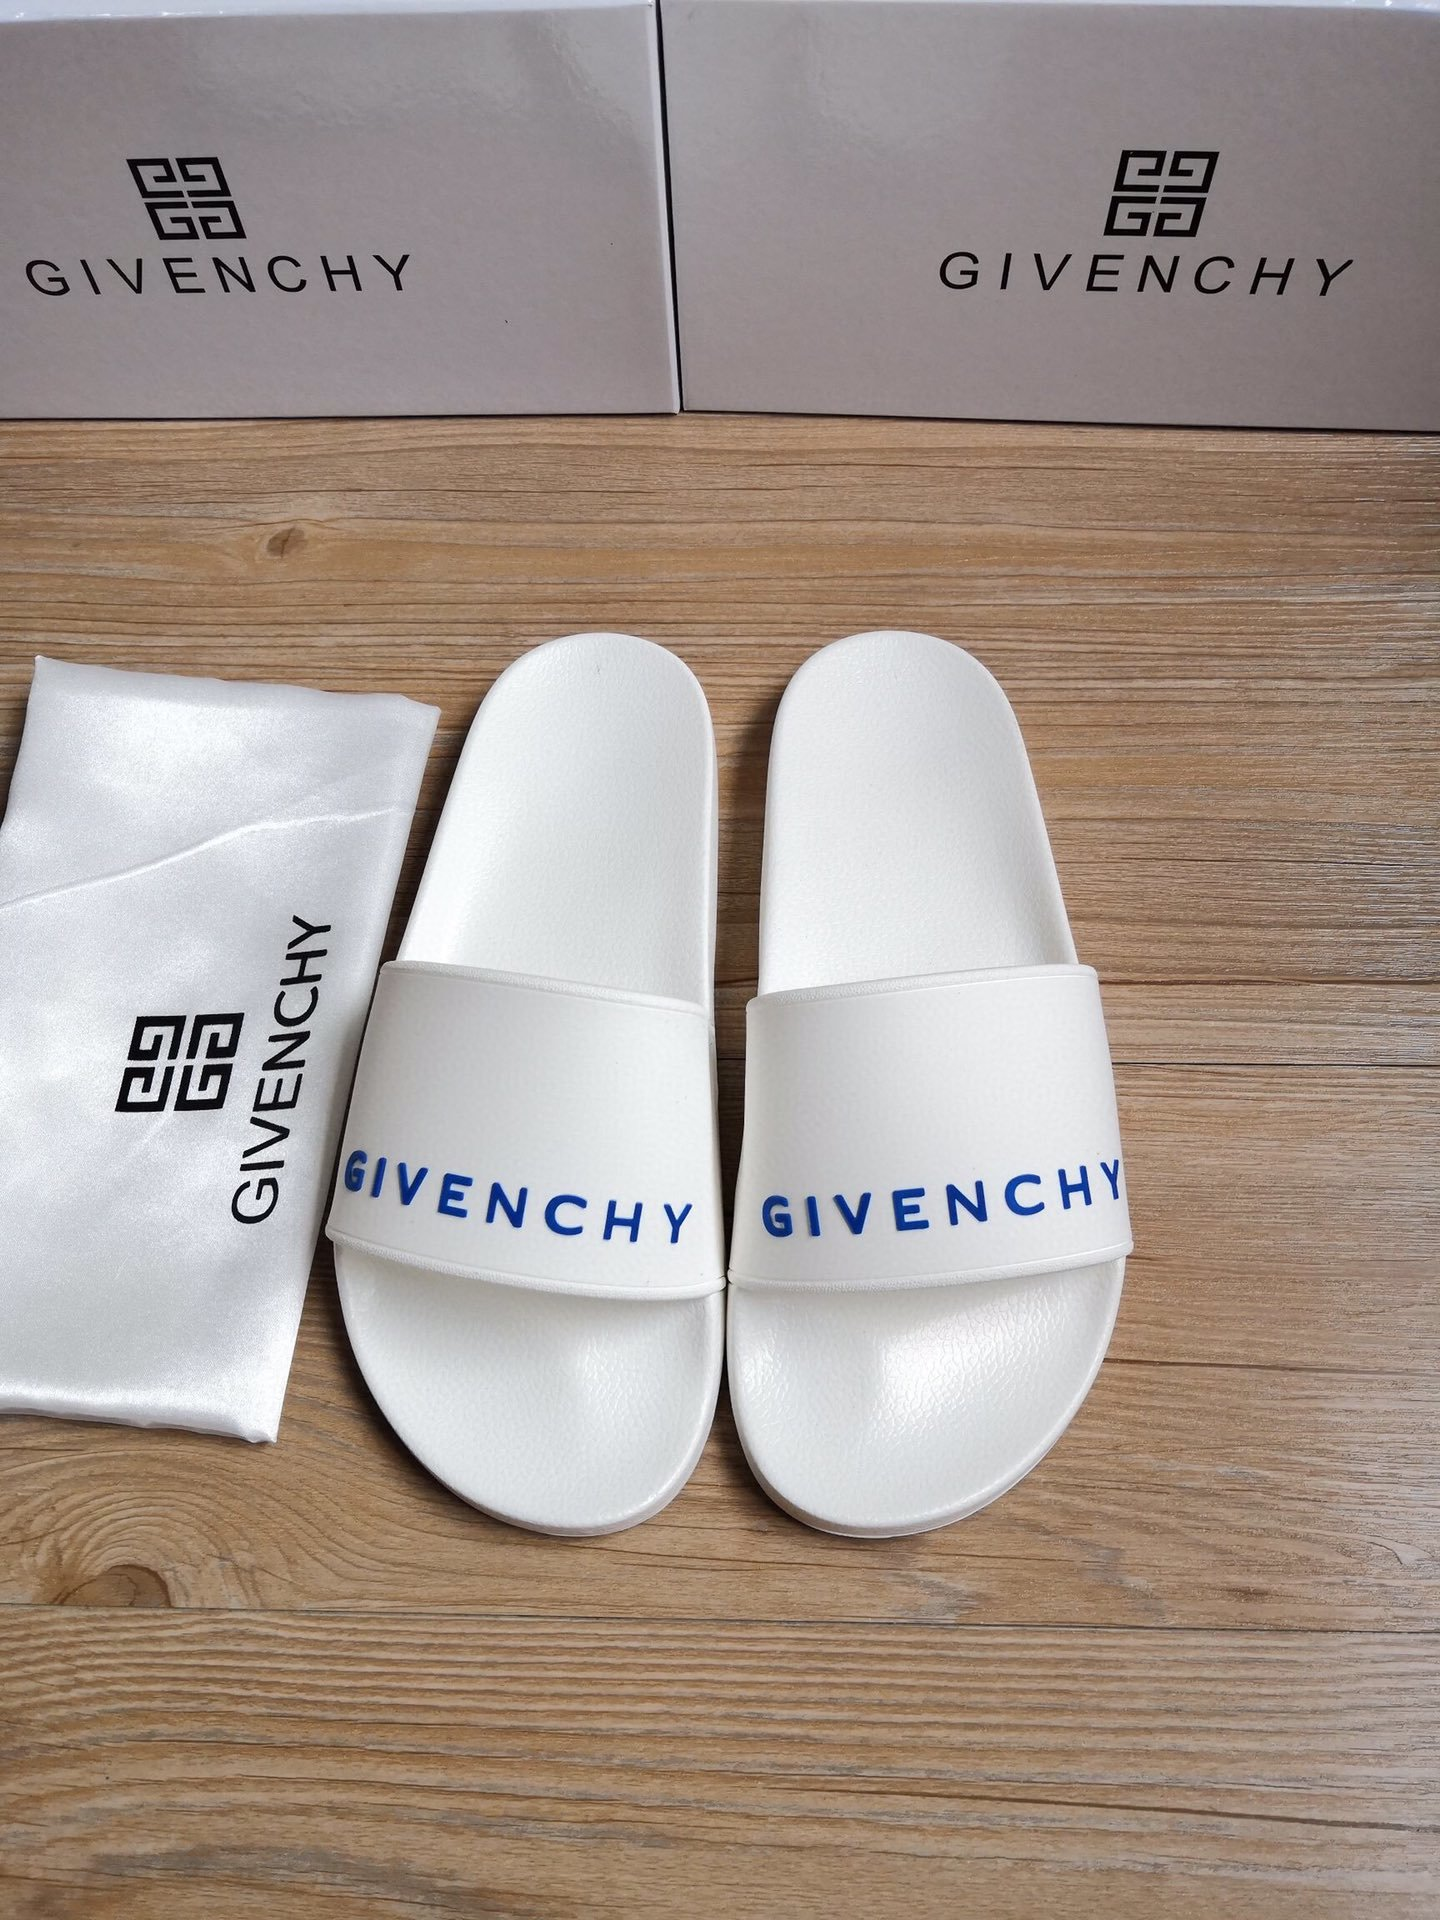 Givenchy Shoes-28